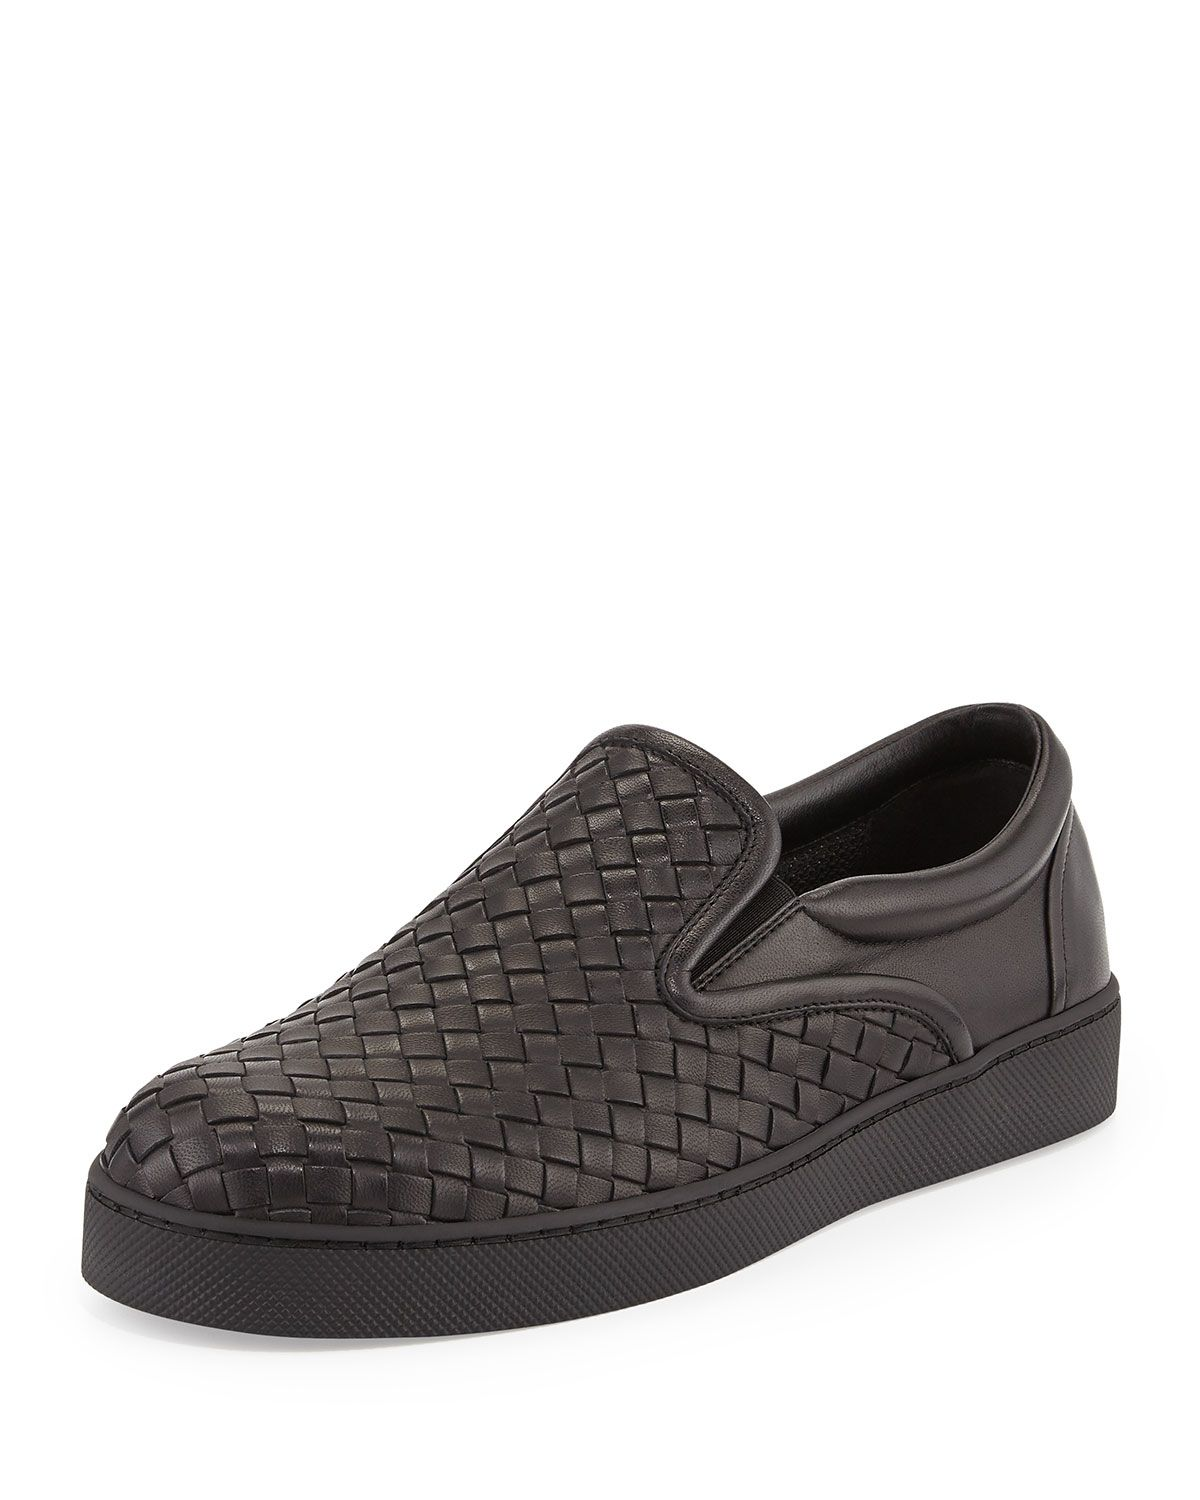 Mens Leather Slip On Sneakers